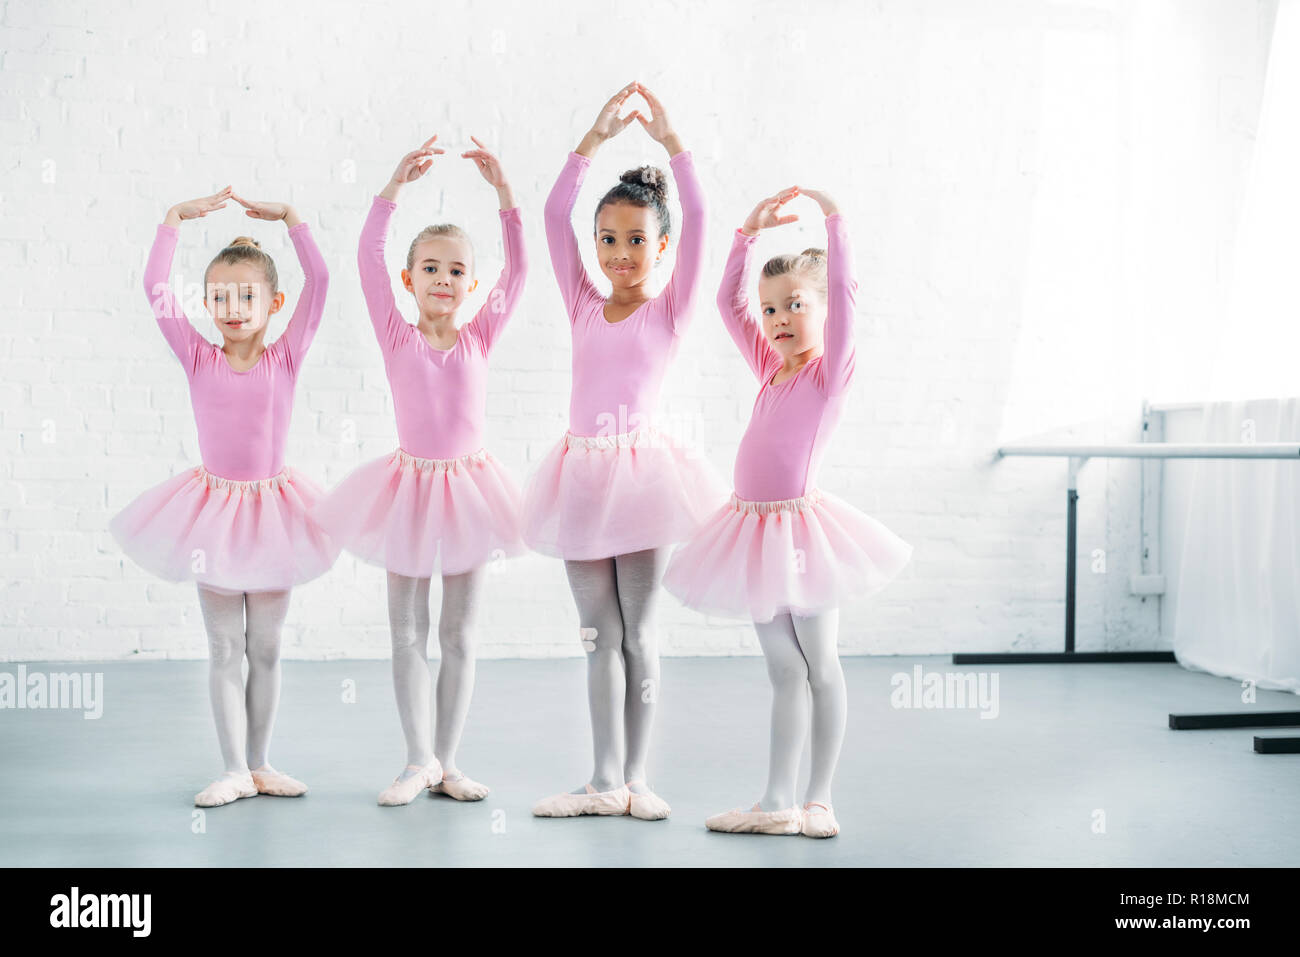 beautiful multiethnic kids in pink tutu skirts practicing ballet together - Stock Image